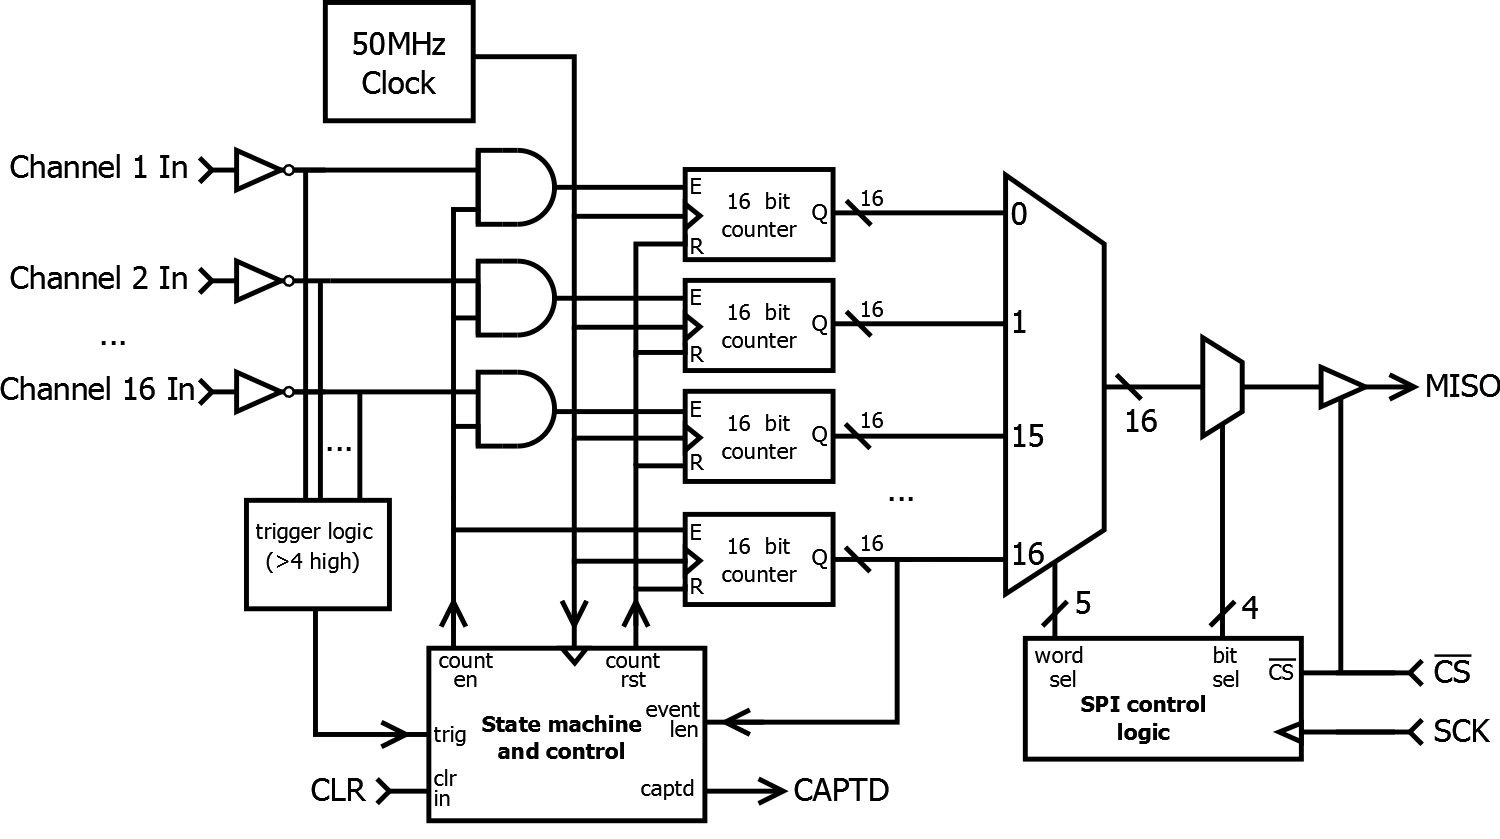 Scintillator Sipm Based Radiation Detector Shown Below Is The Schematic For Pulse Width Monitor A Simplified Block Diagram Representing Logic Implemented Inside Fpga Vhdl Source Code Also Available In Projects Github